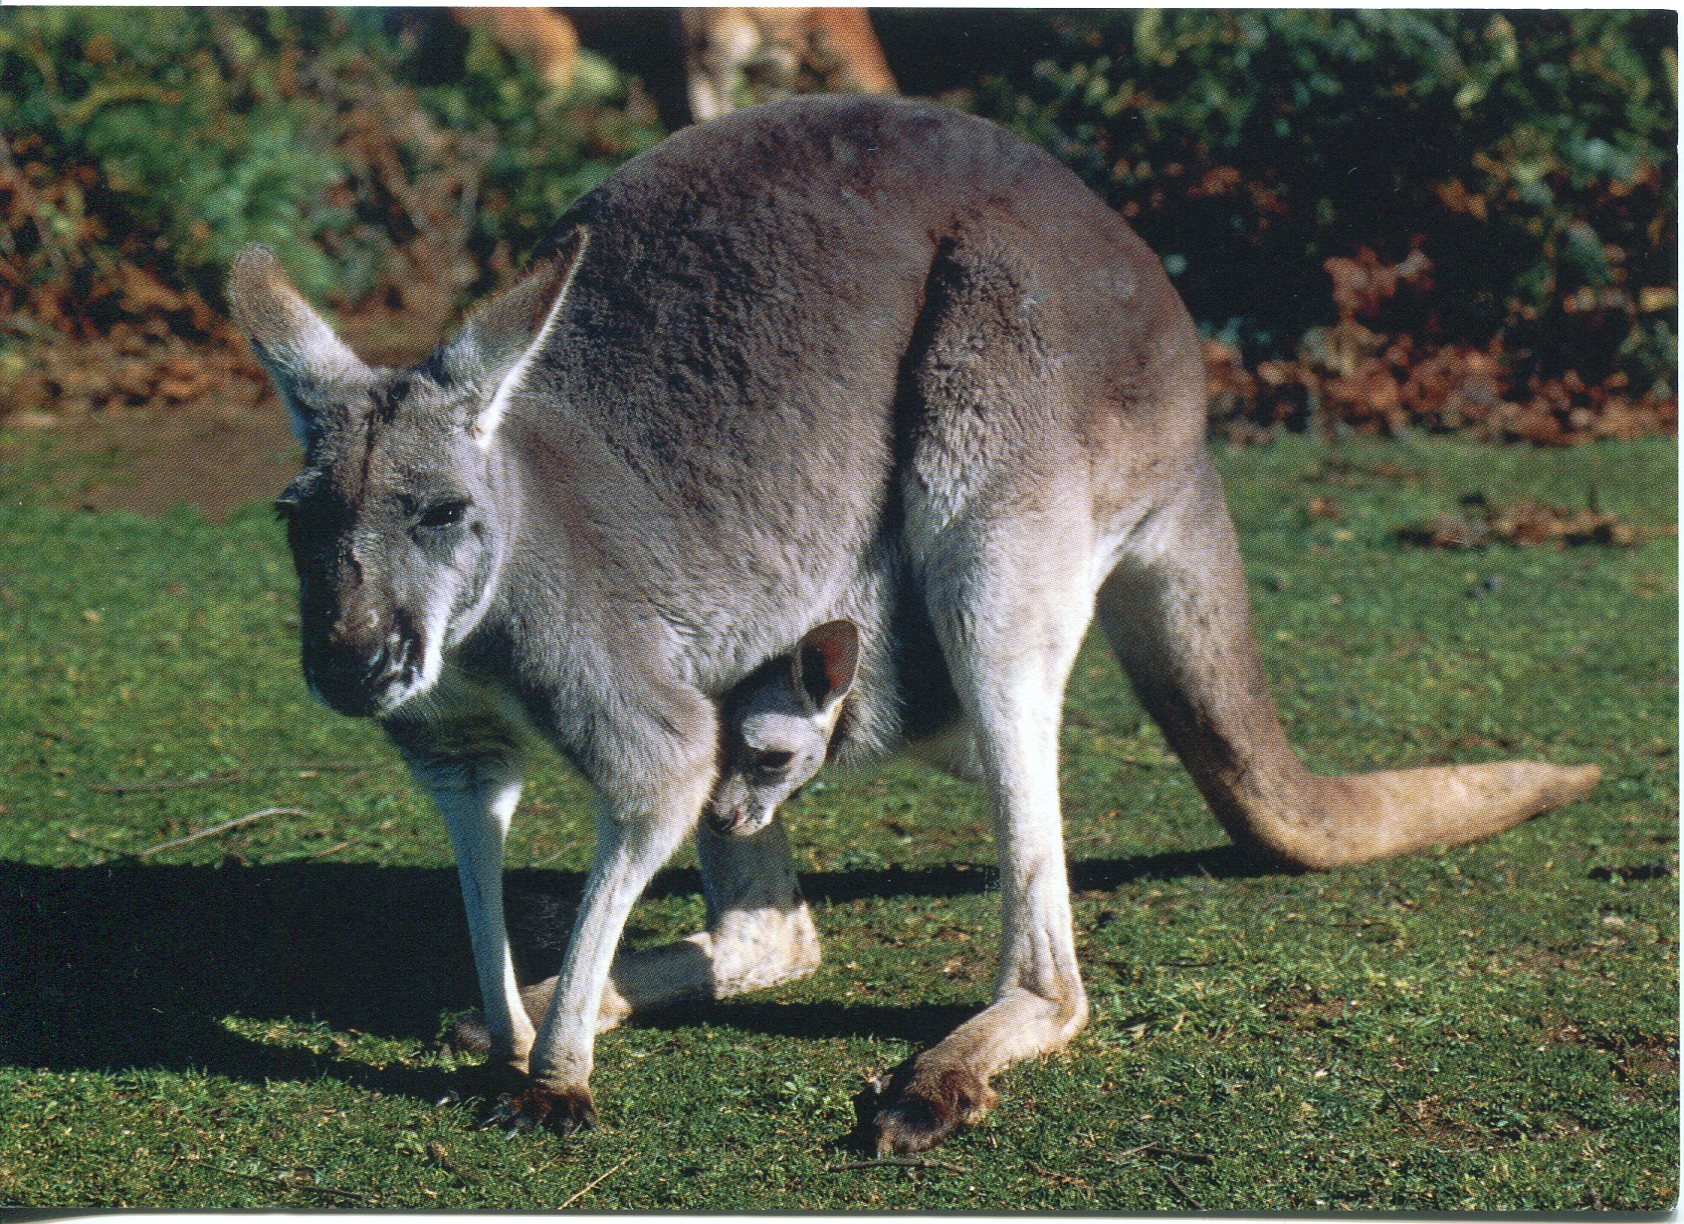 kangaroos essay In 2010, australia was home to just 27 million kangaroos  according to an  essay from the gallo-roman museum at tongeren in belgium, the  dodecahedron.